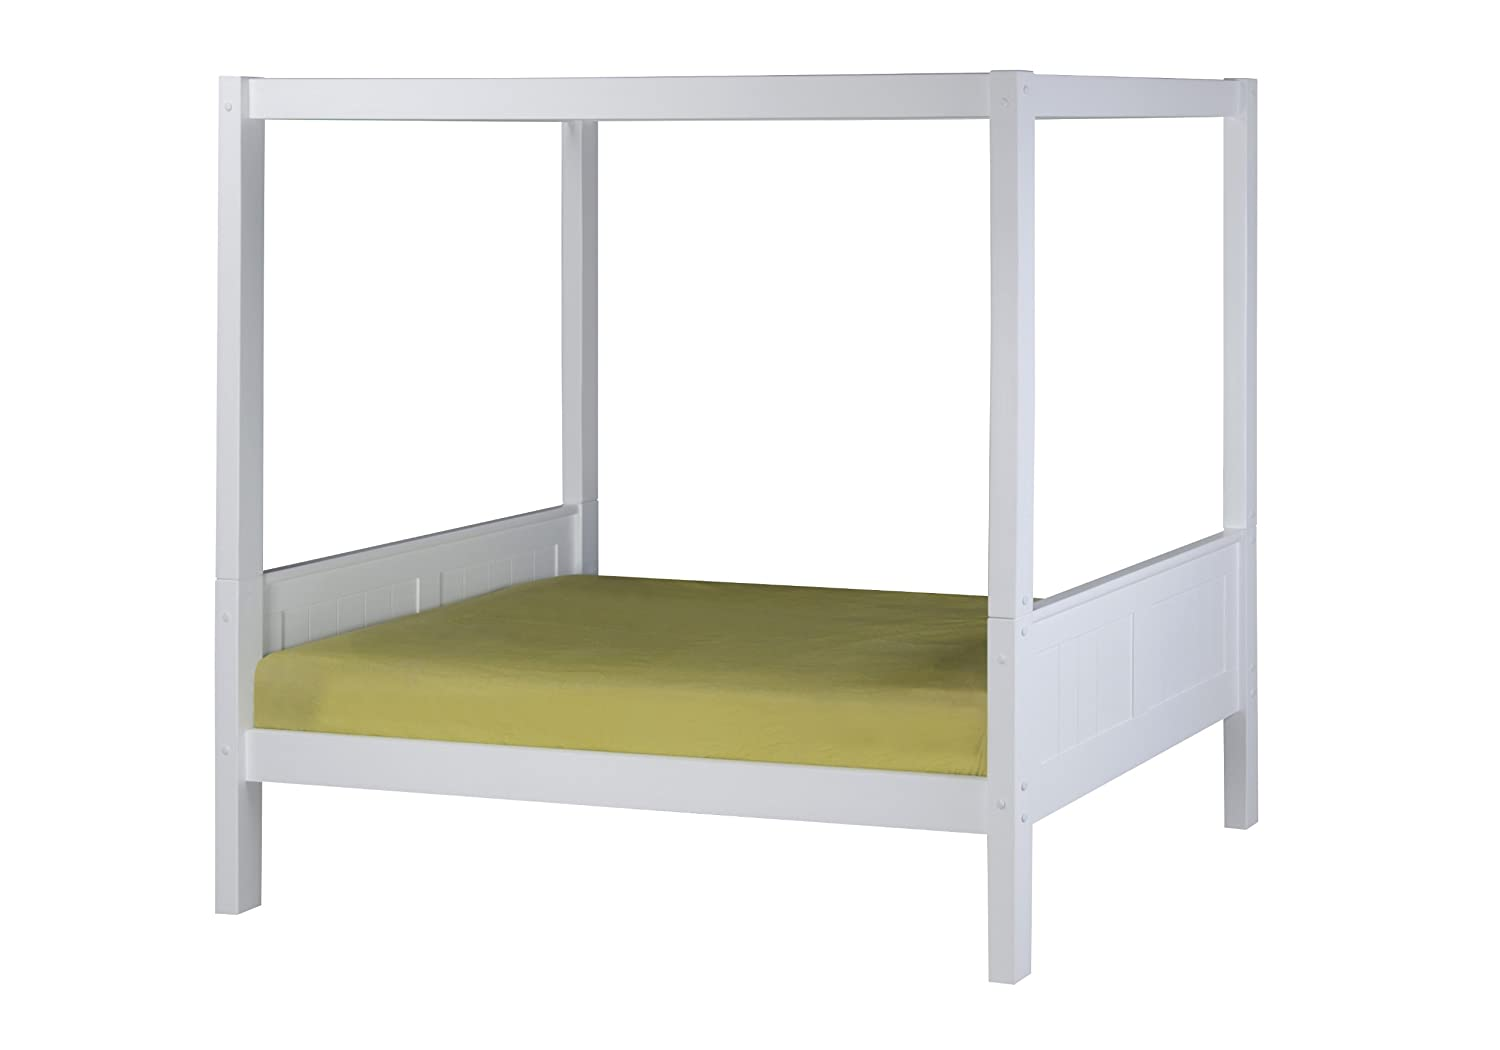 Amazon.com Camaflexi Panel Style Solid Wood Canopy Bed - Twin Natural Kitchen u0026 Dining  sc 1 st  Amazon.com & Amazon.com: Camaflexi Panel Style Solid Wood Canopy Bed - Twin ...